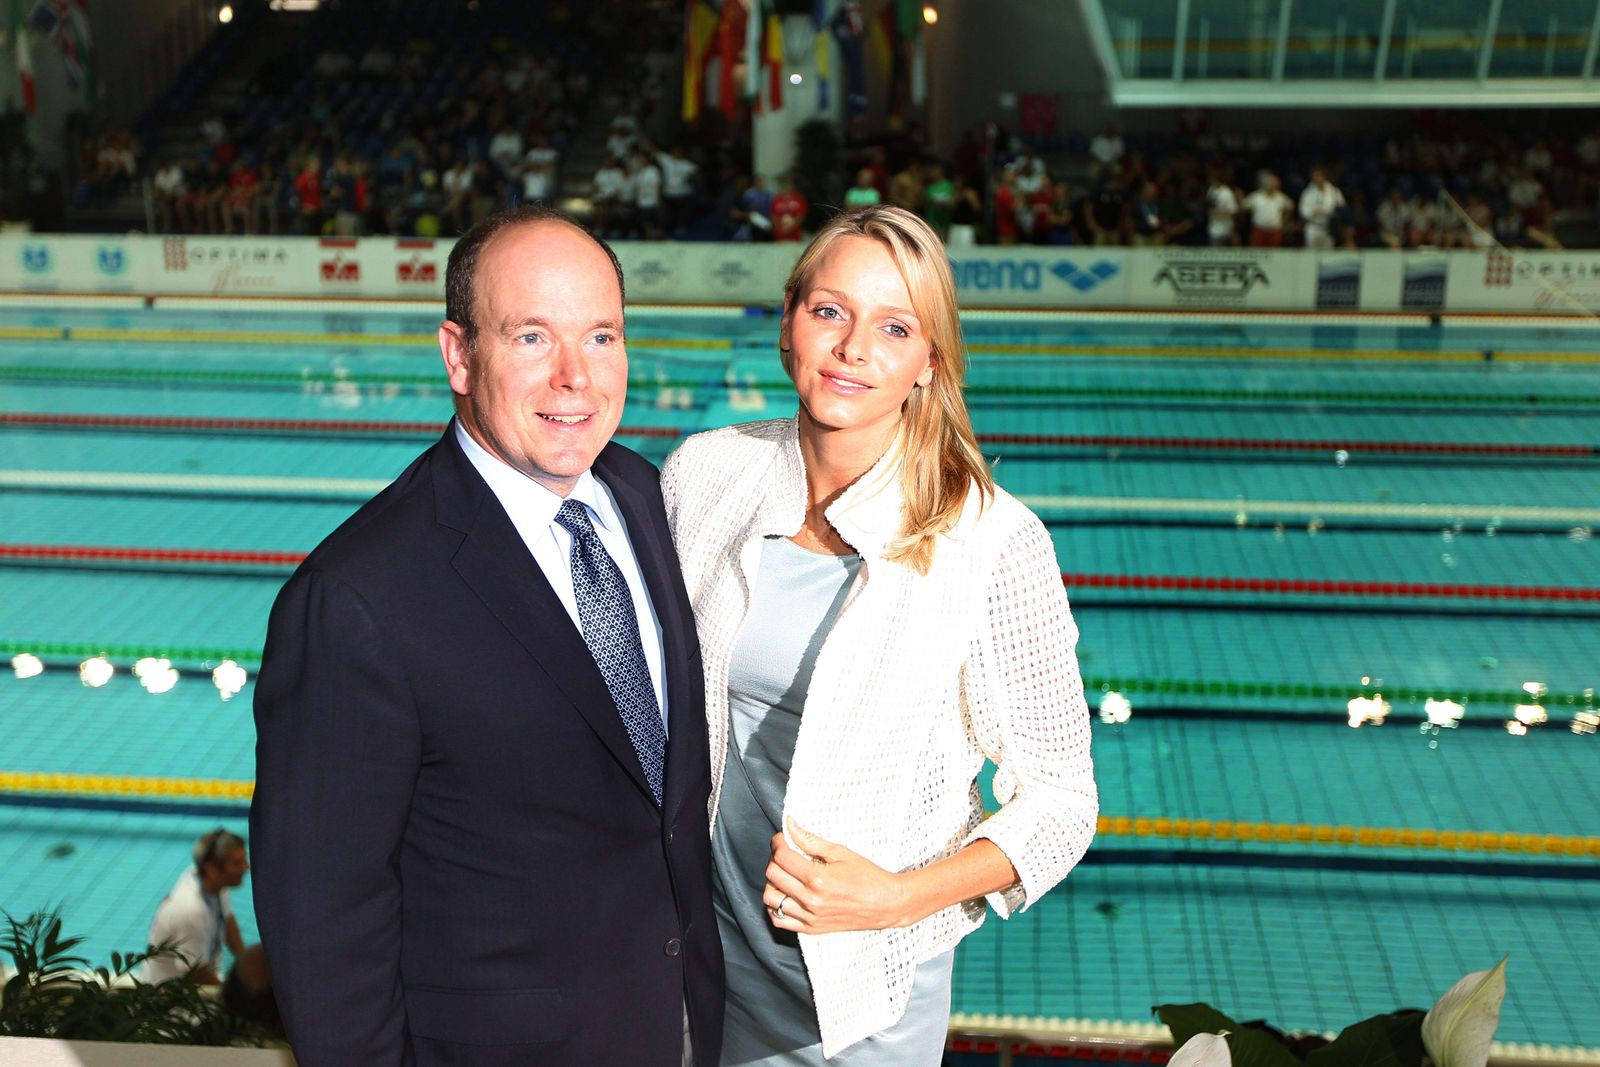 MONACO-SWIMMING-ALBERT II-CHARLENE